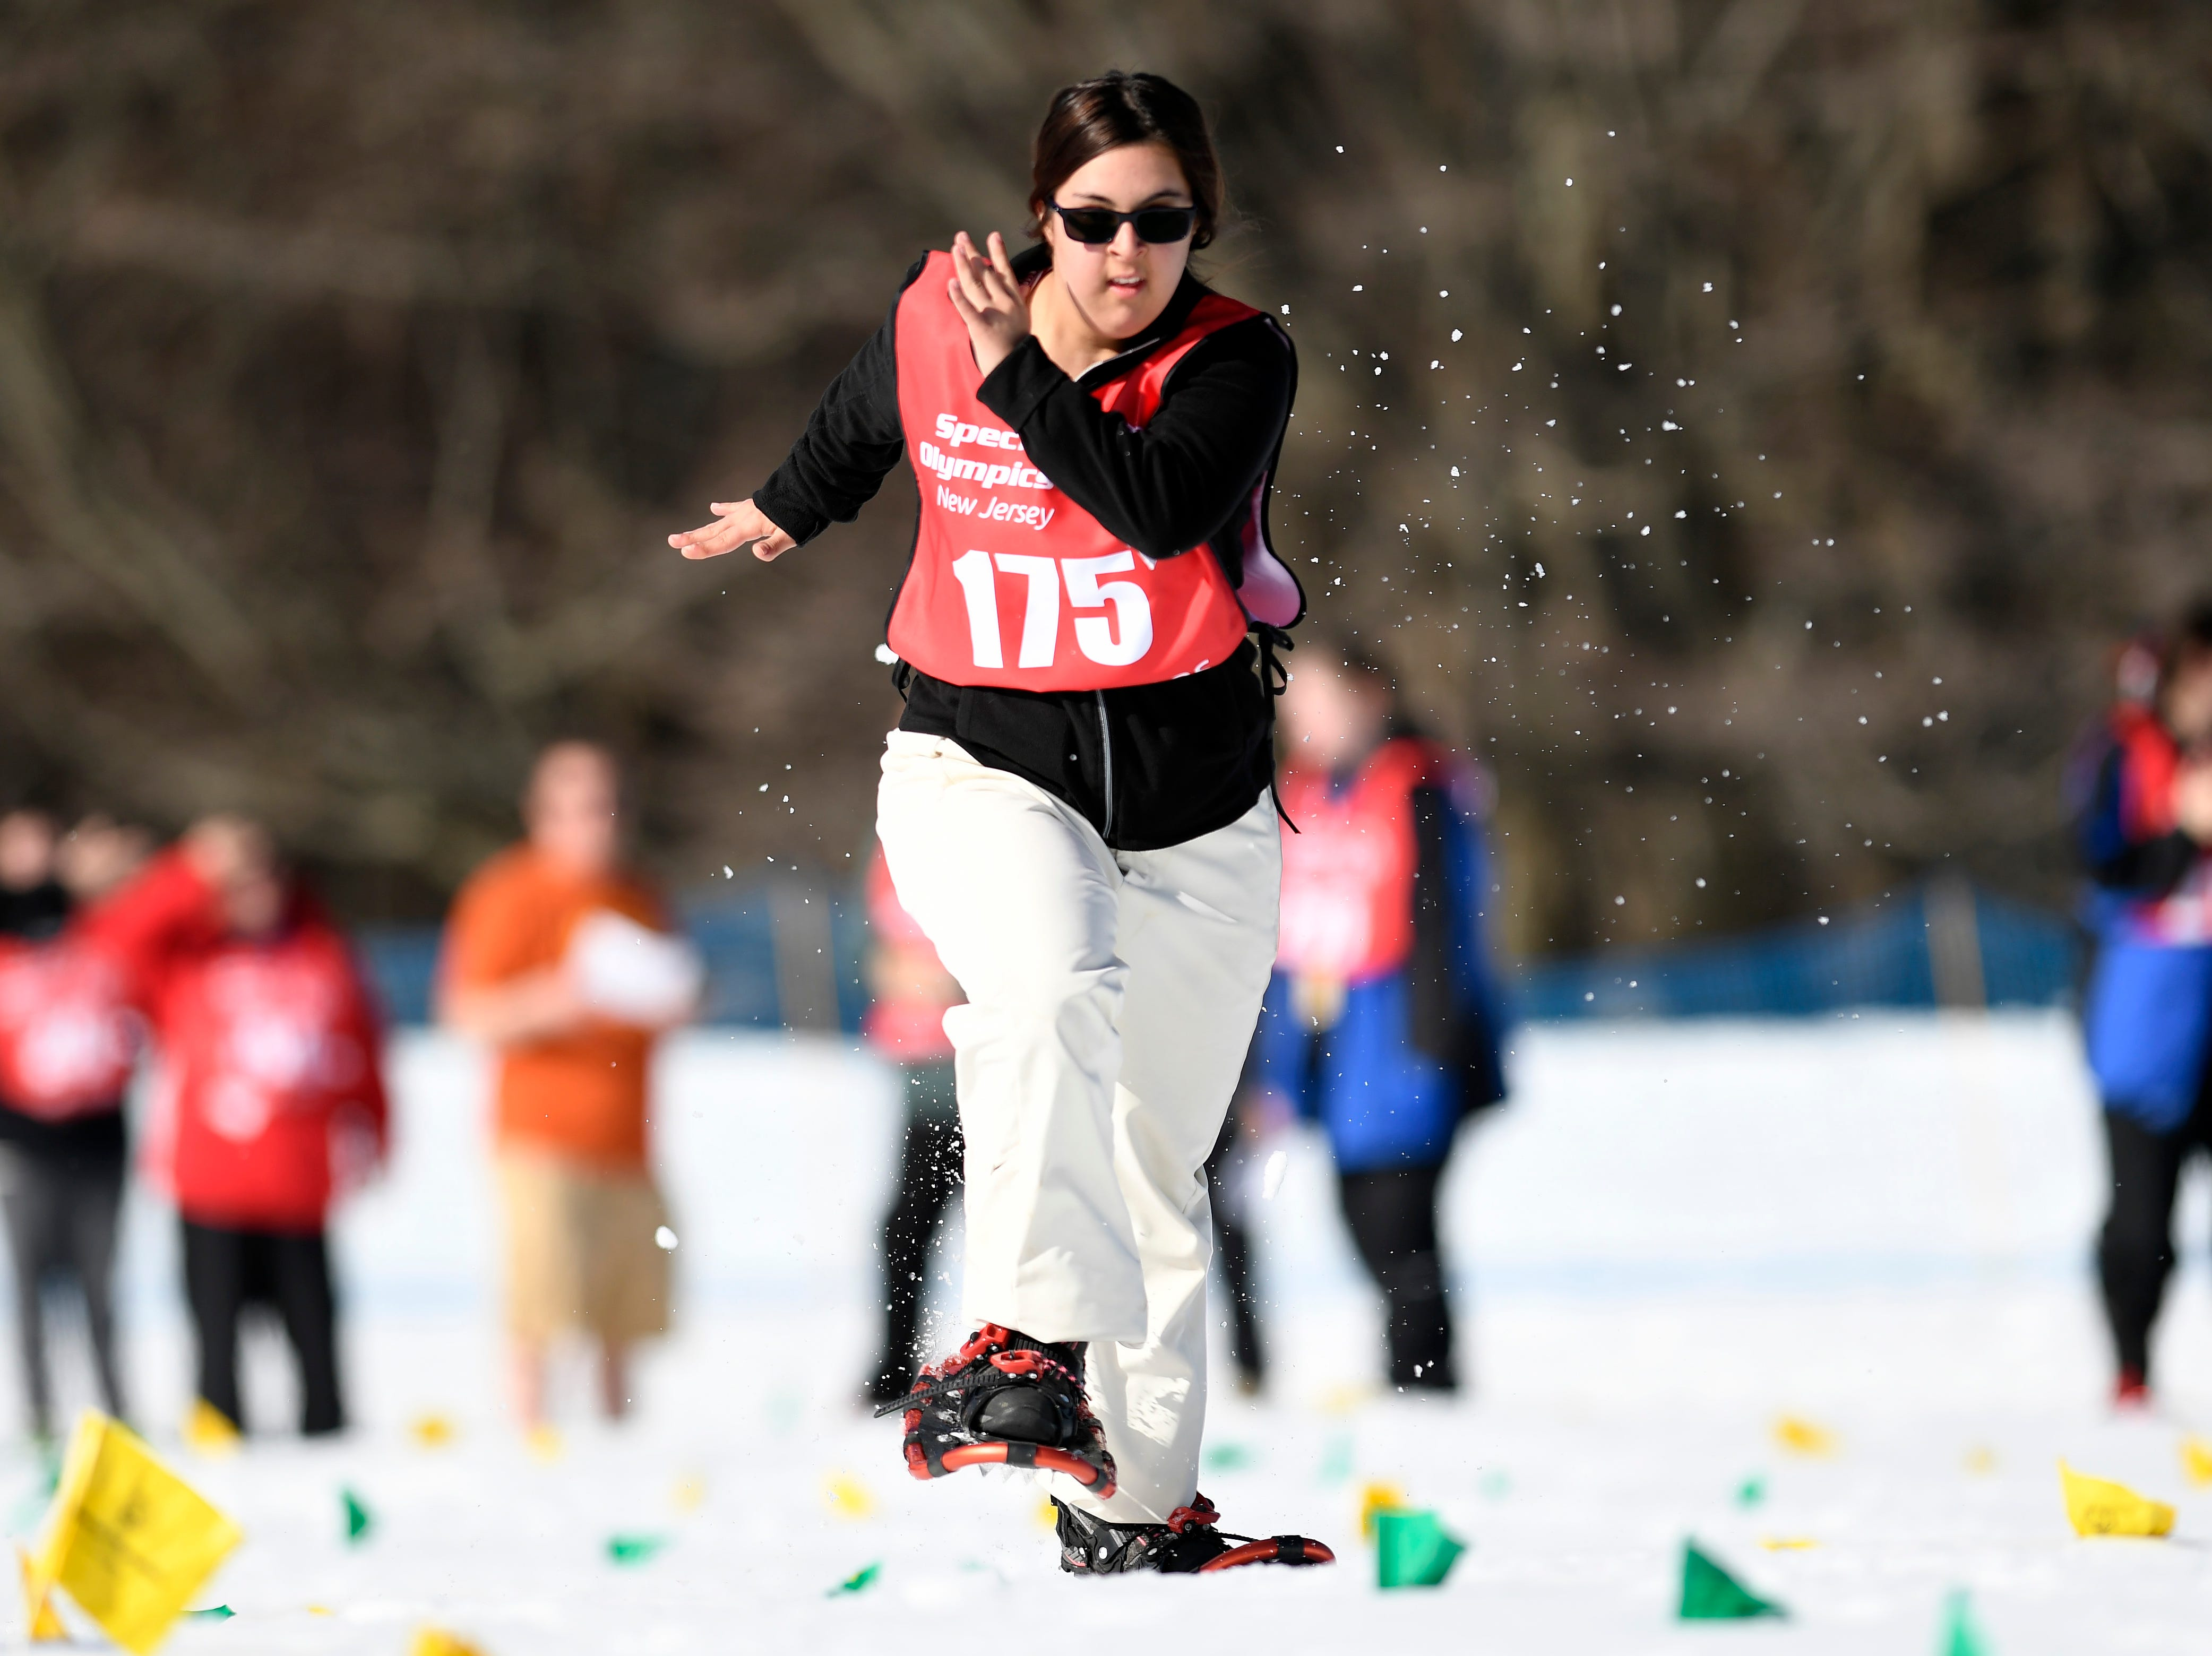 Bailey Fluke of Whitehouse Station competes in the snowshoeing 200-meter during the Special Olympics New Jersey 2019 Winter Games on Tuesday, Feb. 5, 2019, in Vernon.